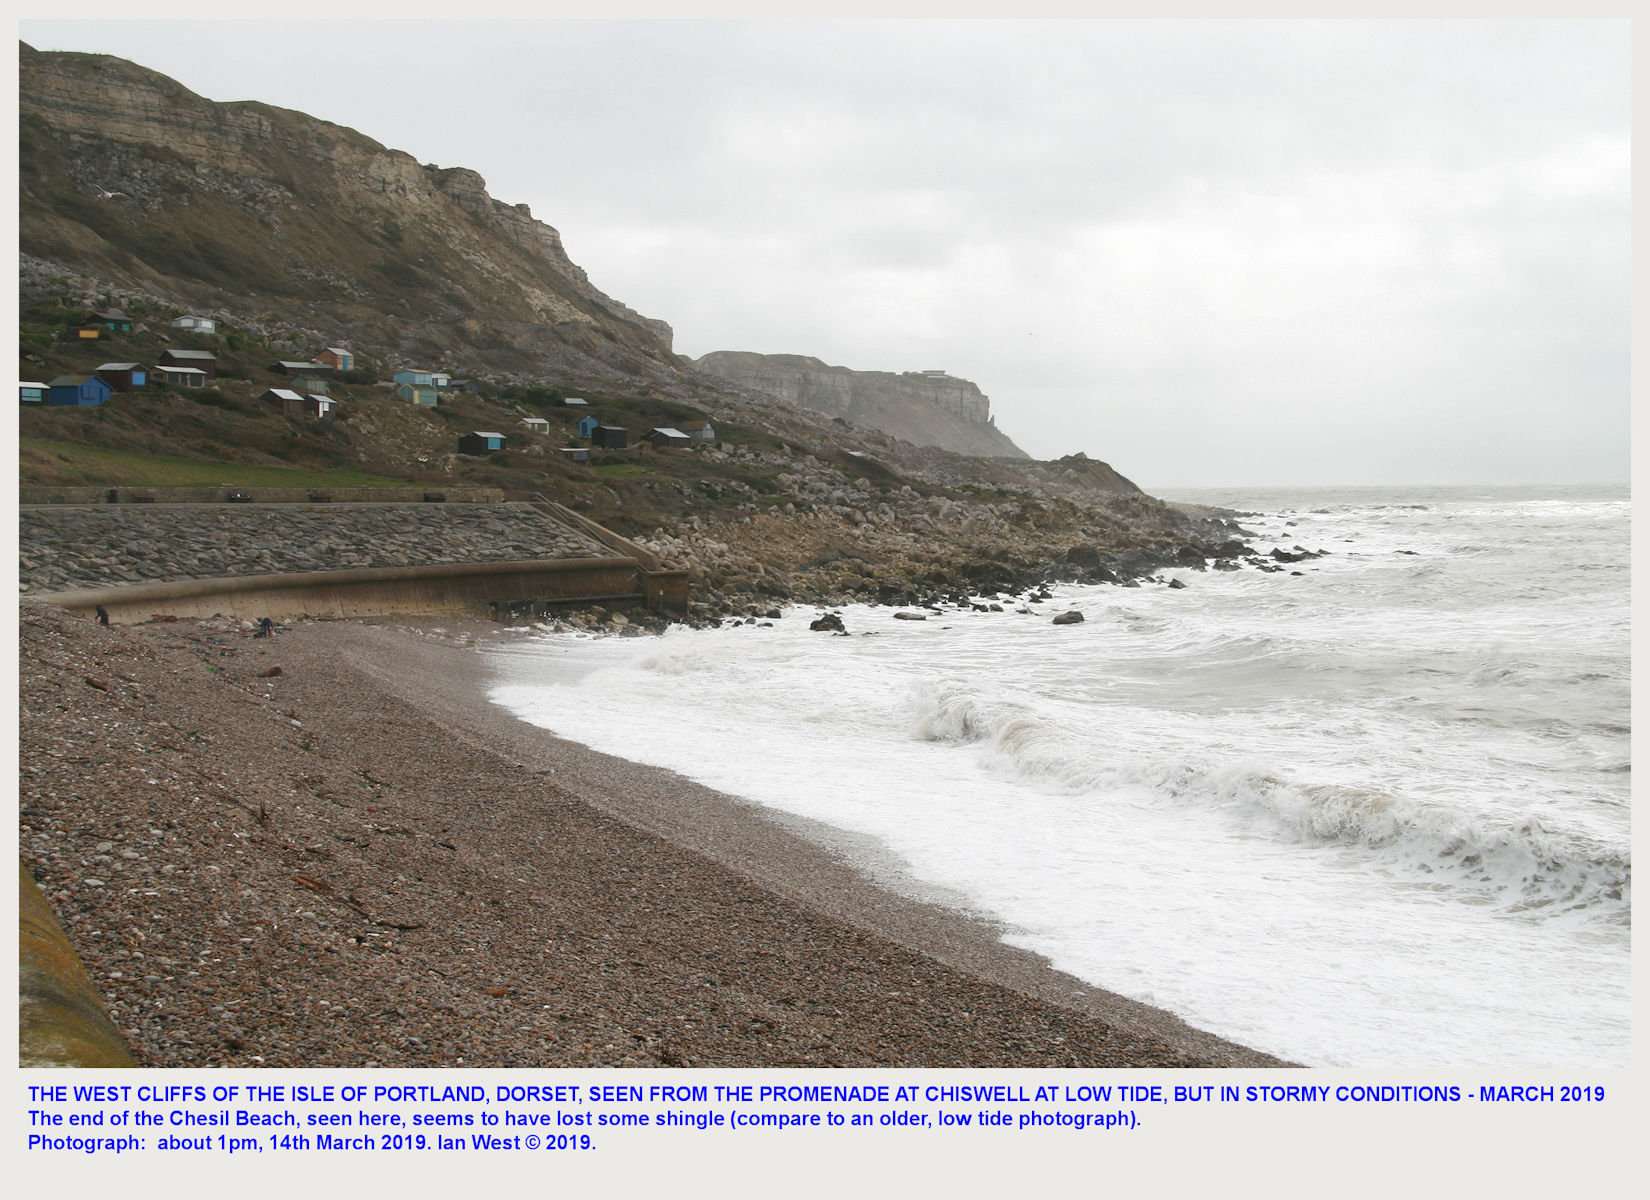 The West Cliffs of the Isle of Portland, Dorset, showing West Weare, Clay Ope and Black Nore, at low tide and in stormy weather, 14th March 2019